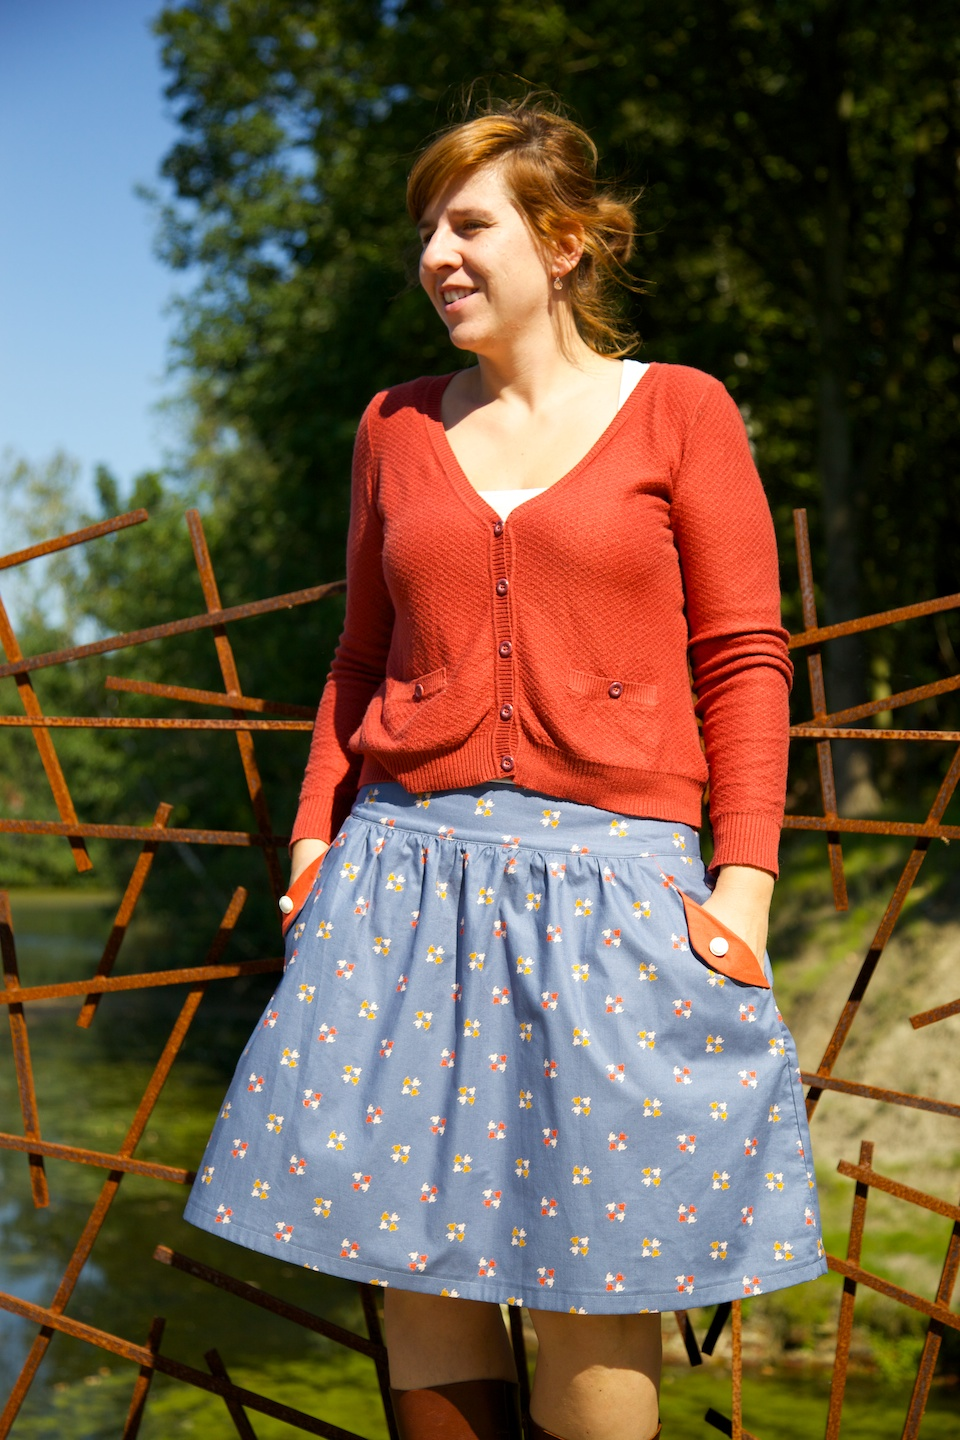 Compagnie-M_Lotta_skirt_women 4